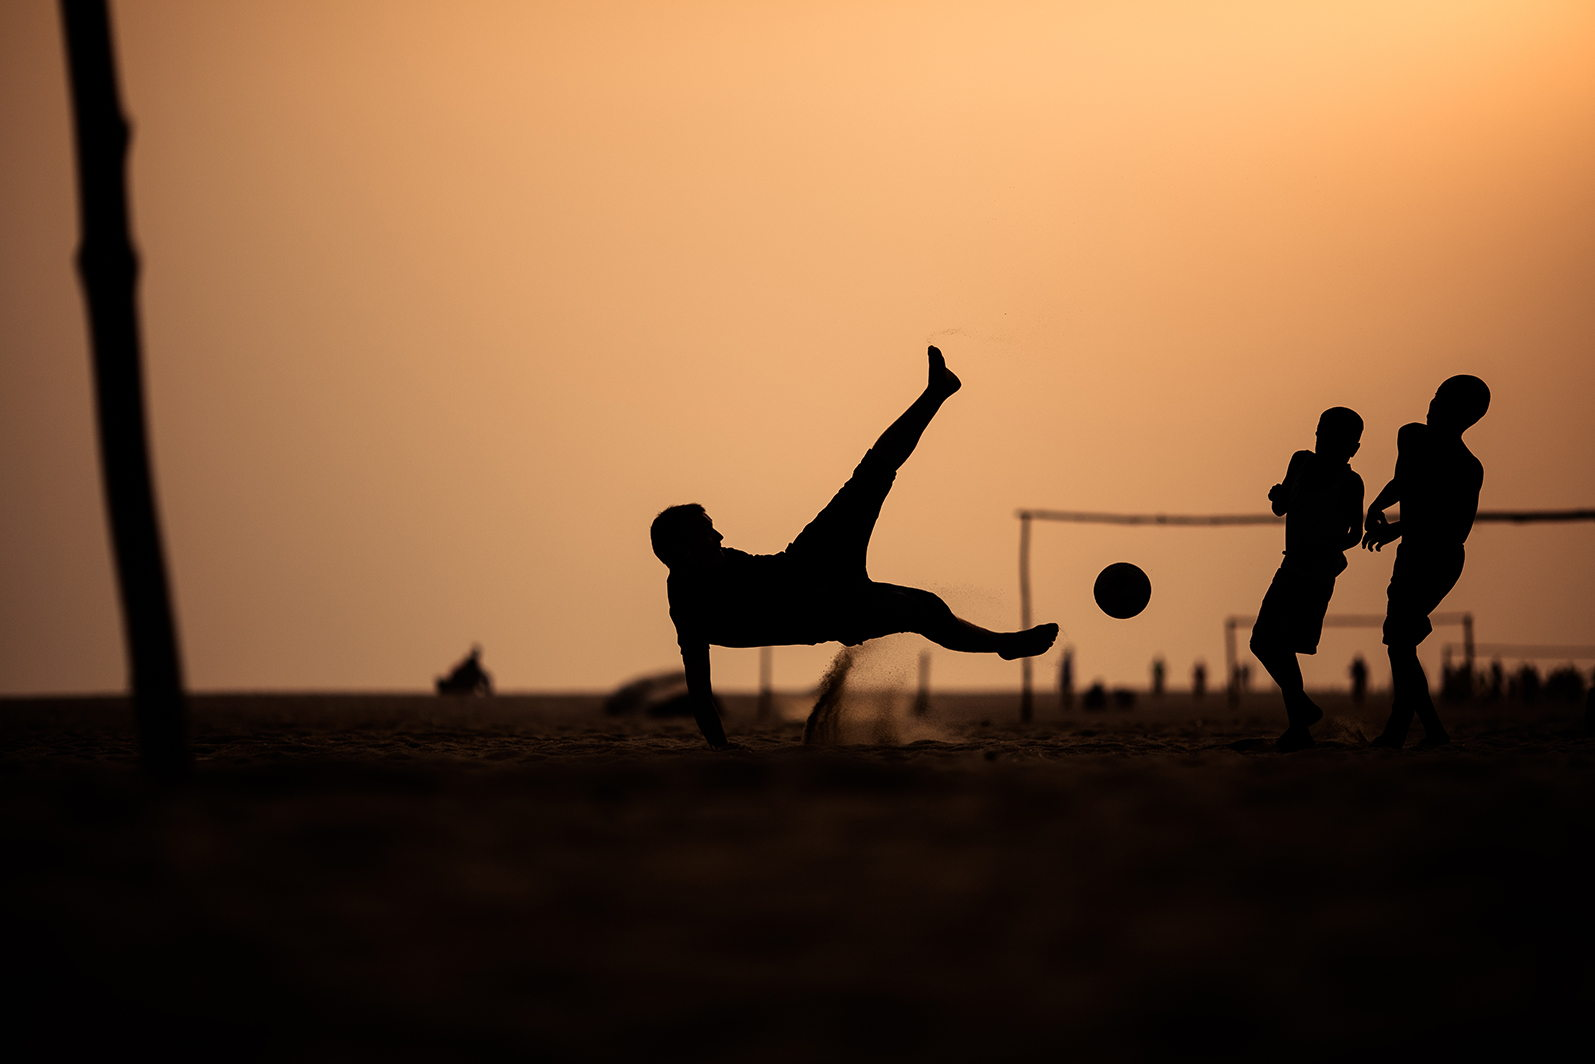 30 Action-Packed Photos Of People Playing Football/Soccer At Sunset